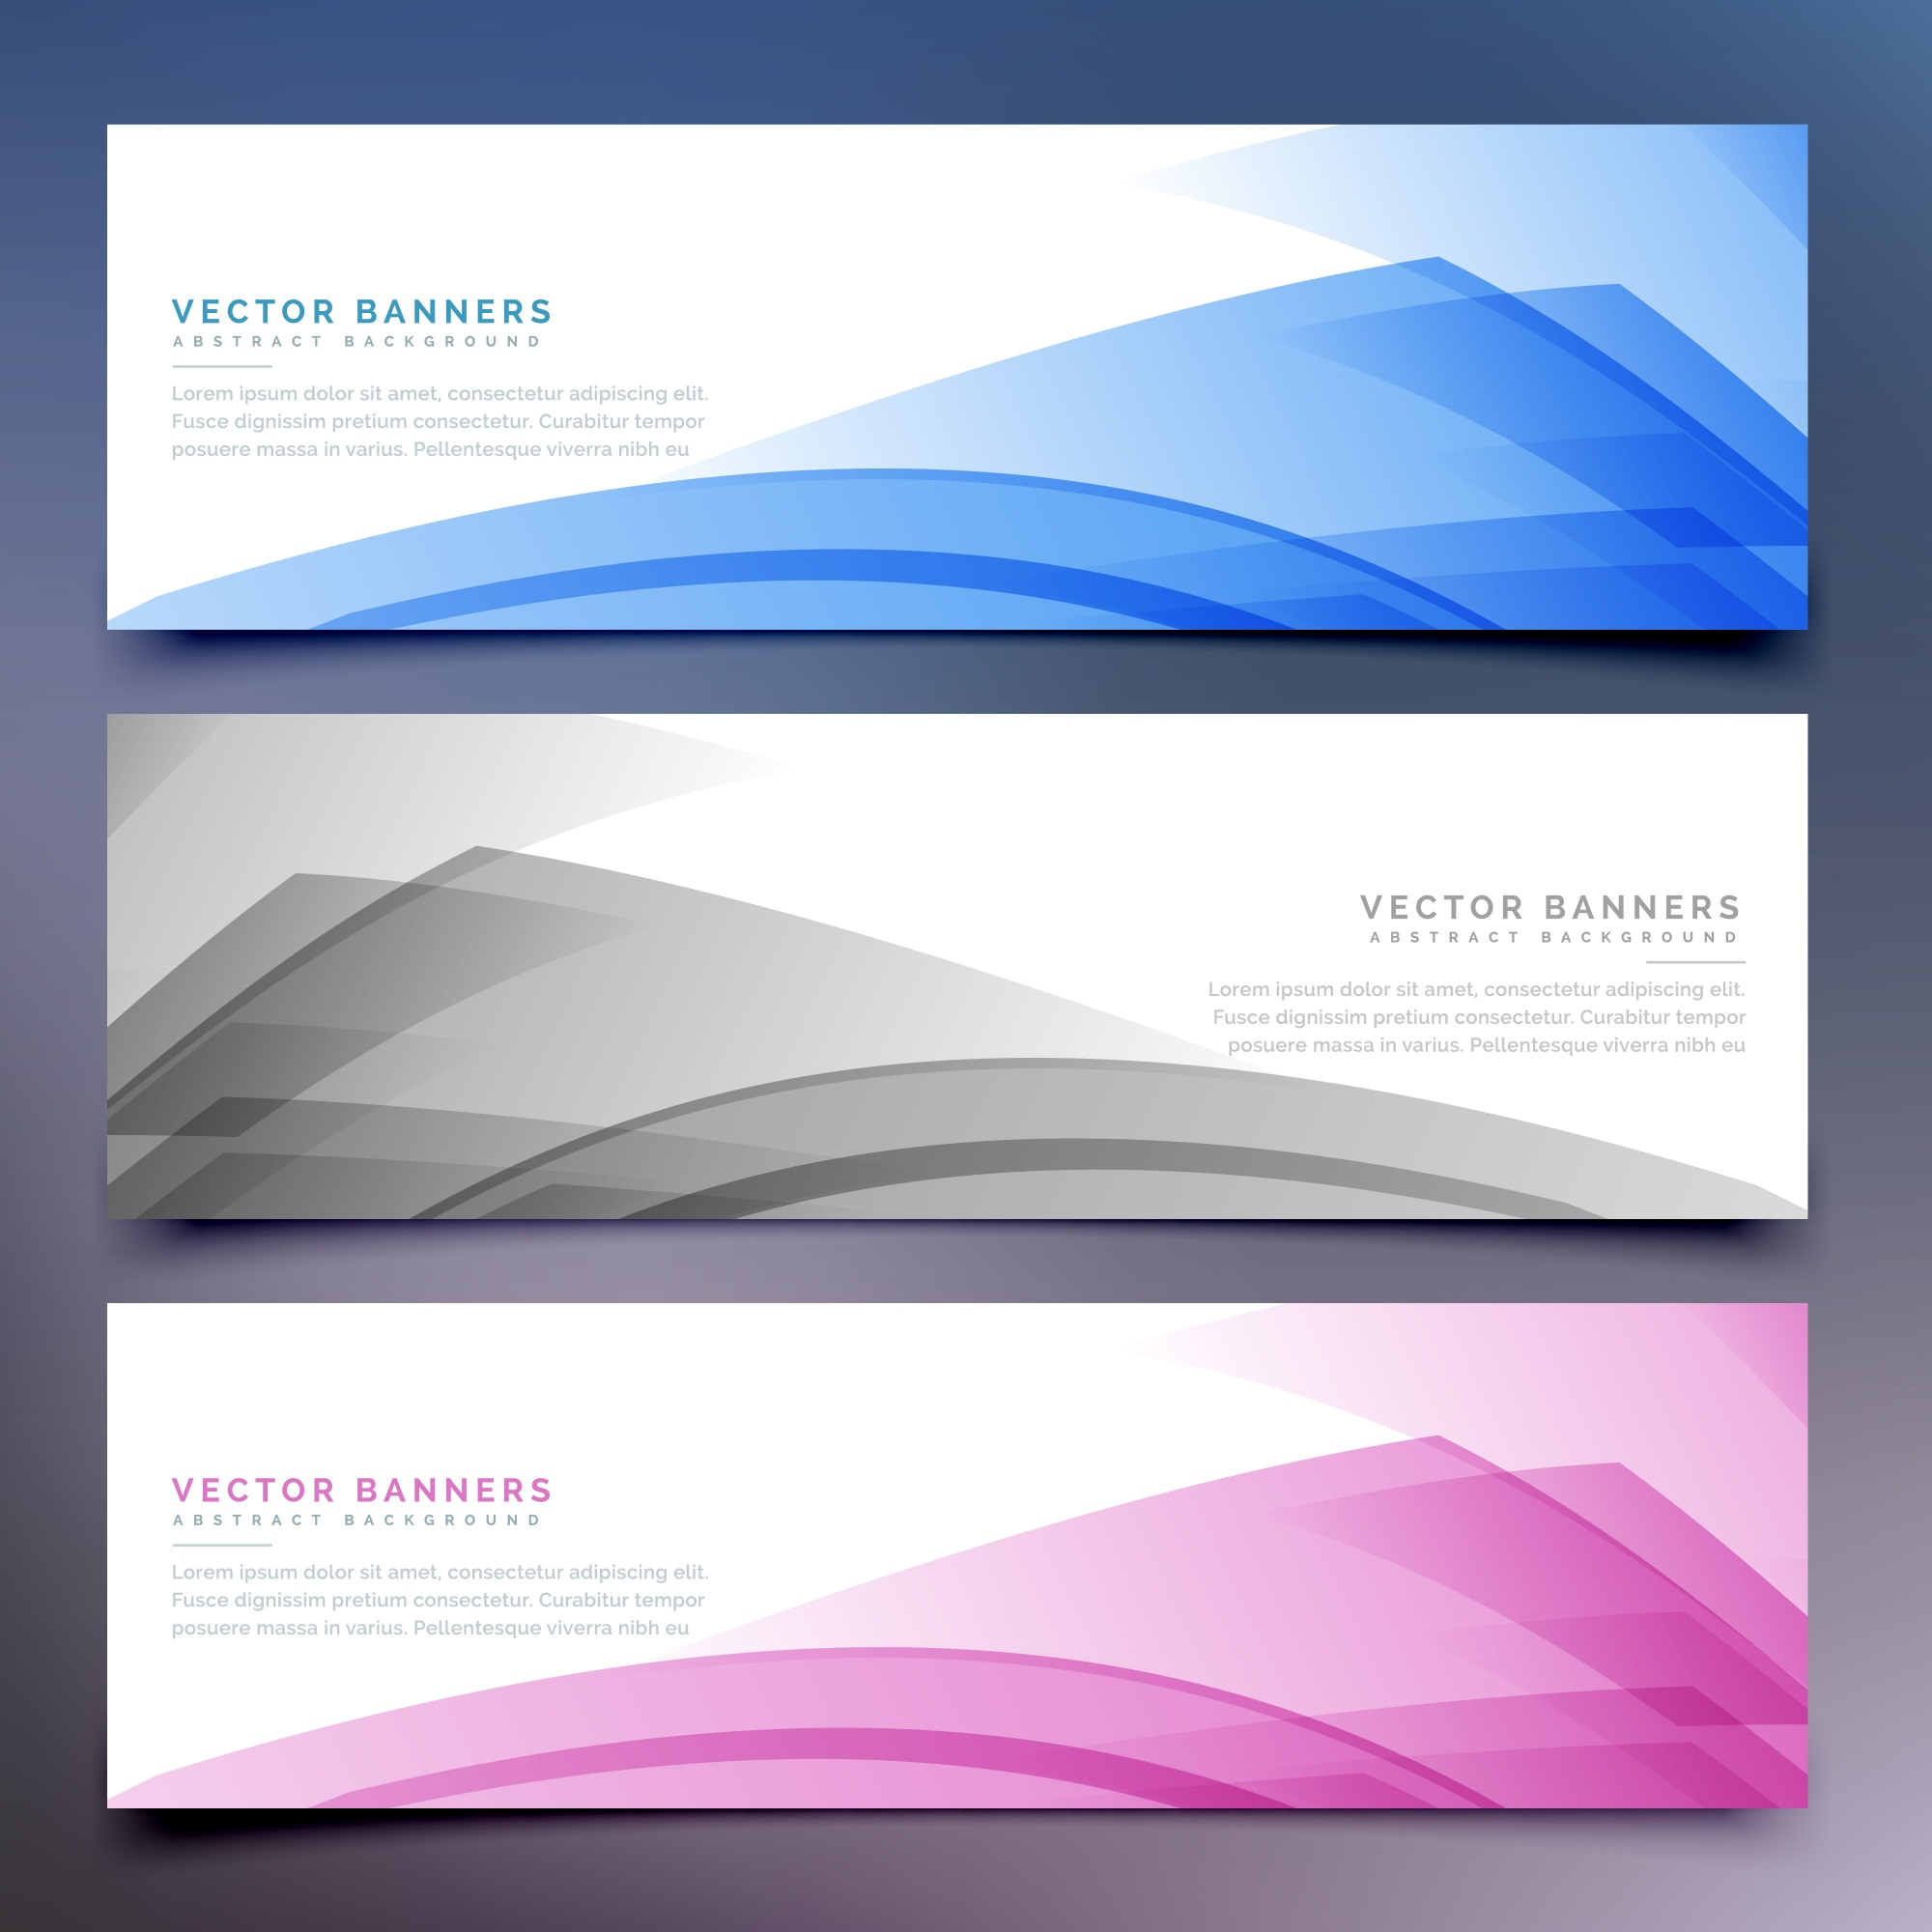 Banners with abstract shapes and transparencies